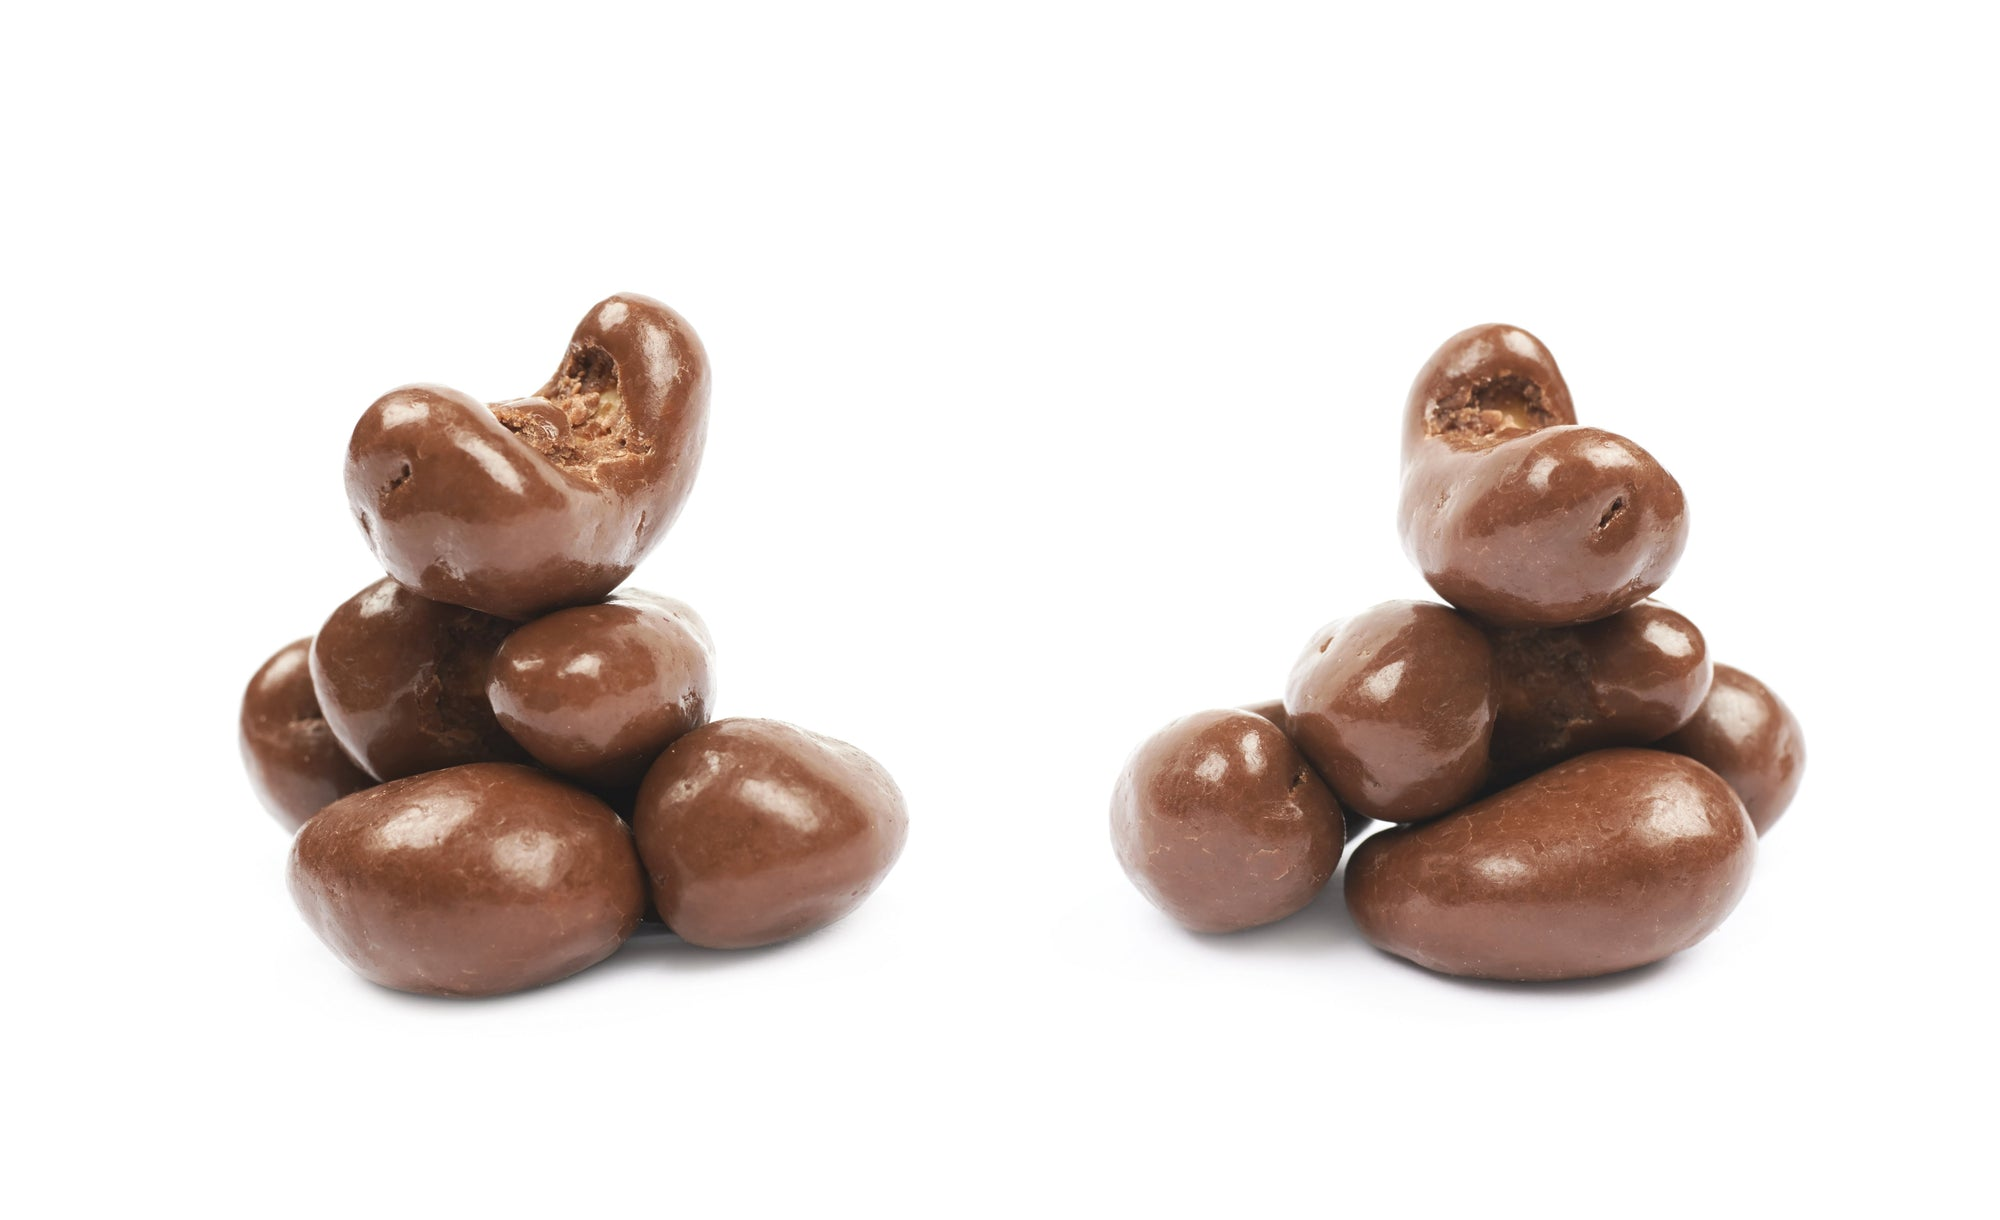 Milk Chocolate Cashews 6 oz. - 905S